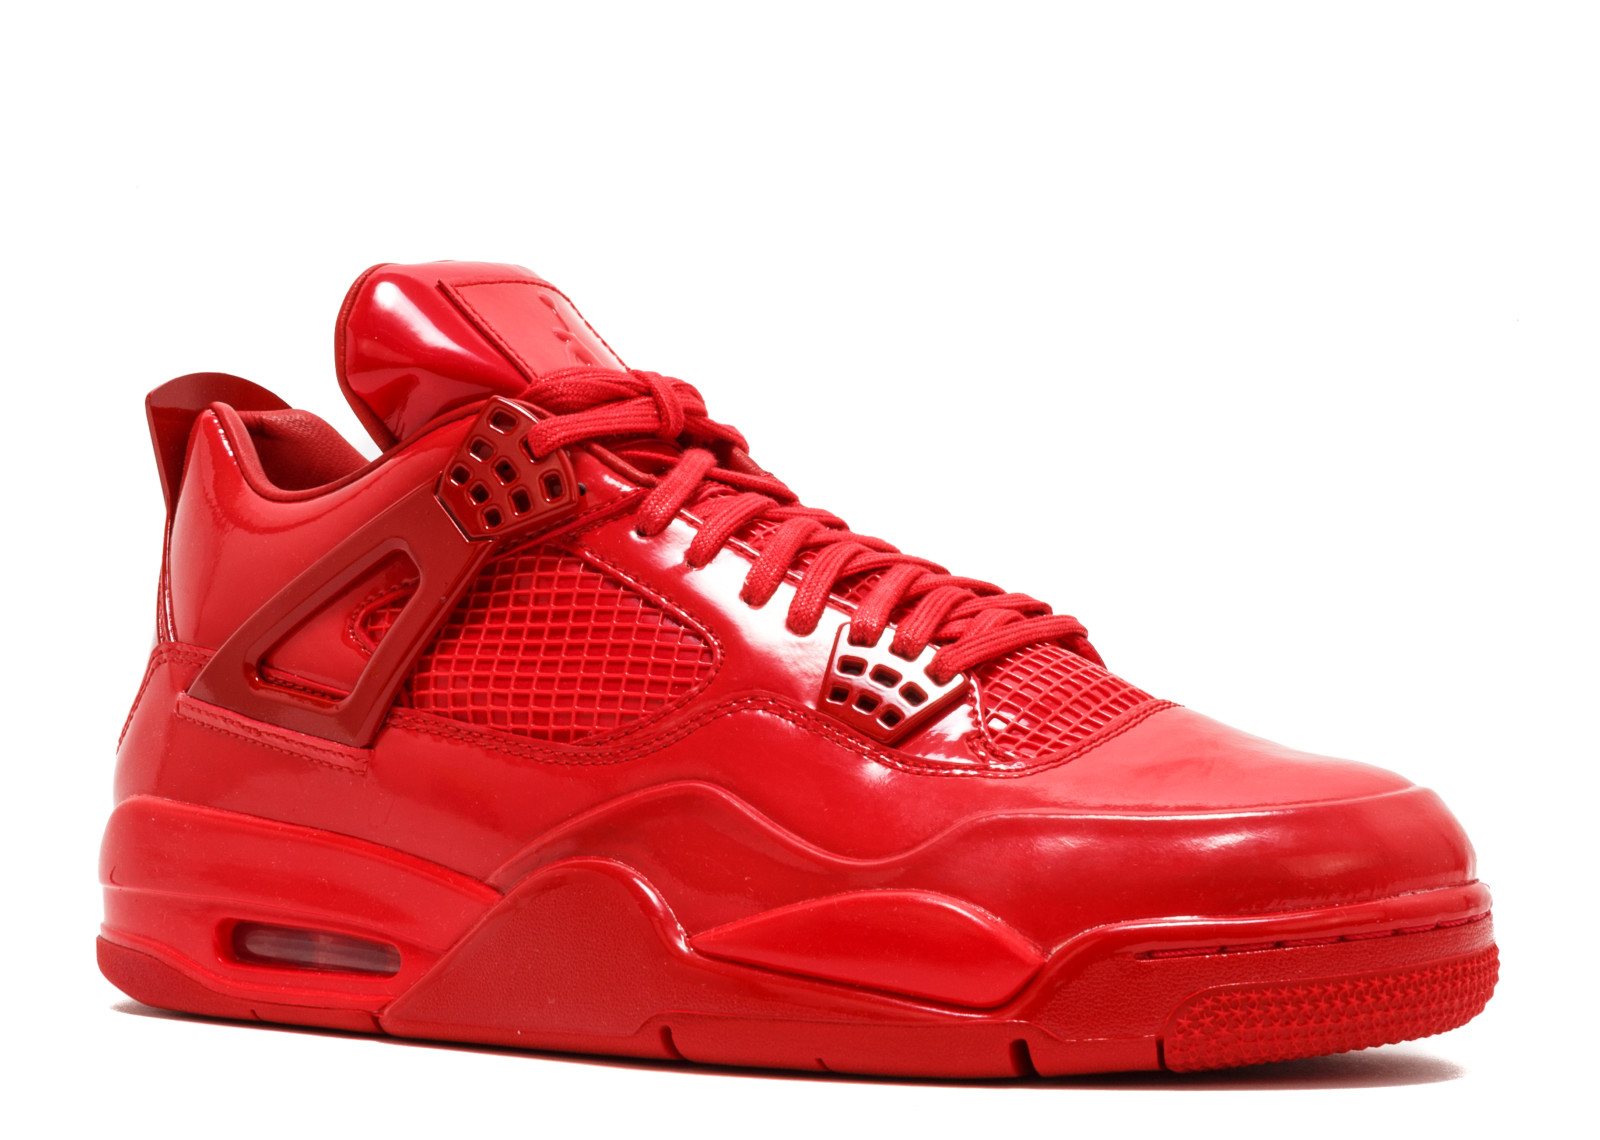 best authentic e14ec 68193 Air Jordan - Men - Air Jordan 4 11Lab4 '11Lab4' - 719864-600 - Size 10